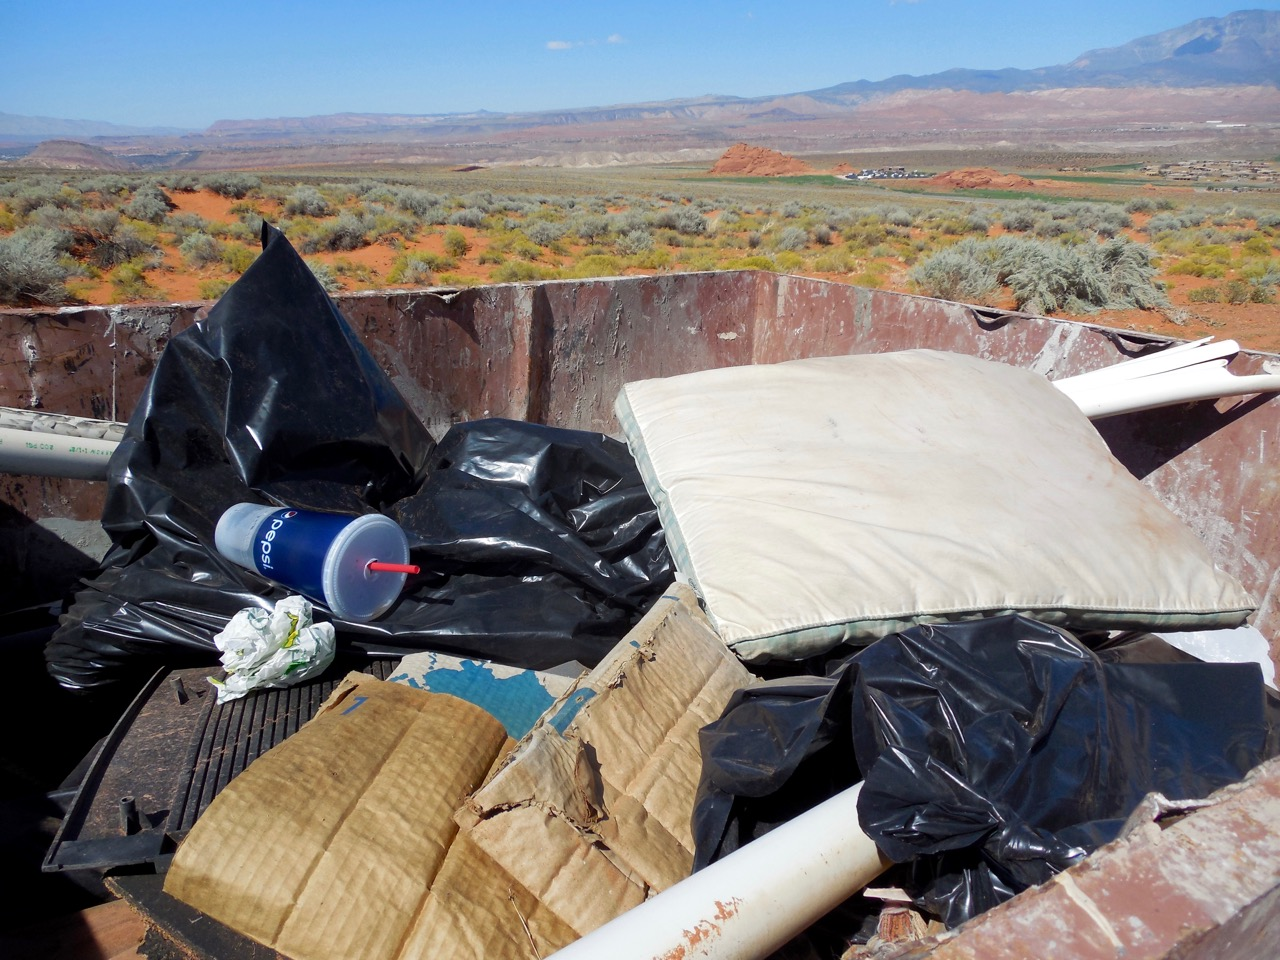 Garbage picked up by volunteers during a National Public Lands Day project Saturday, Hurricane, Utah, Sept. 24, 2016 | Photo courtesy of Desert Roads and Trails Society – Desert RATS, St. George News